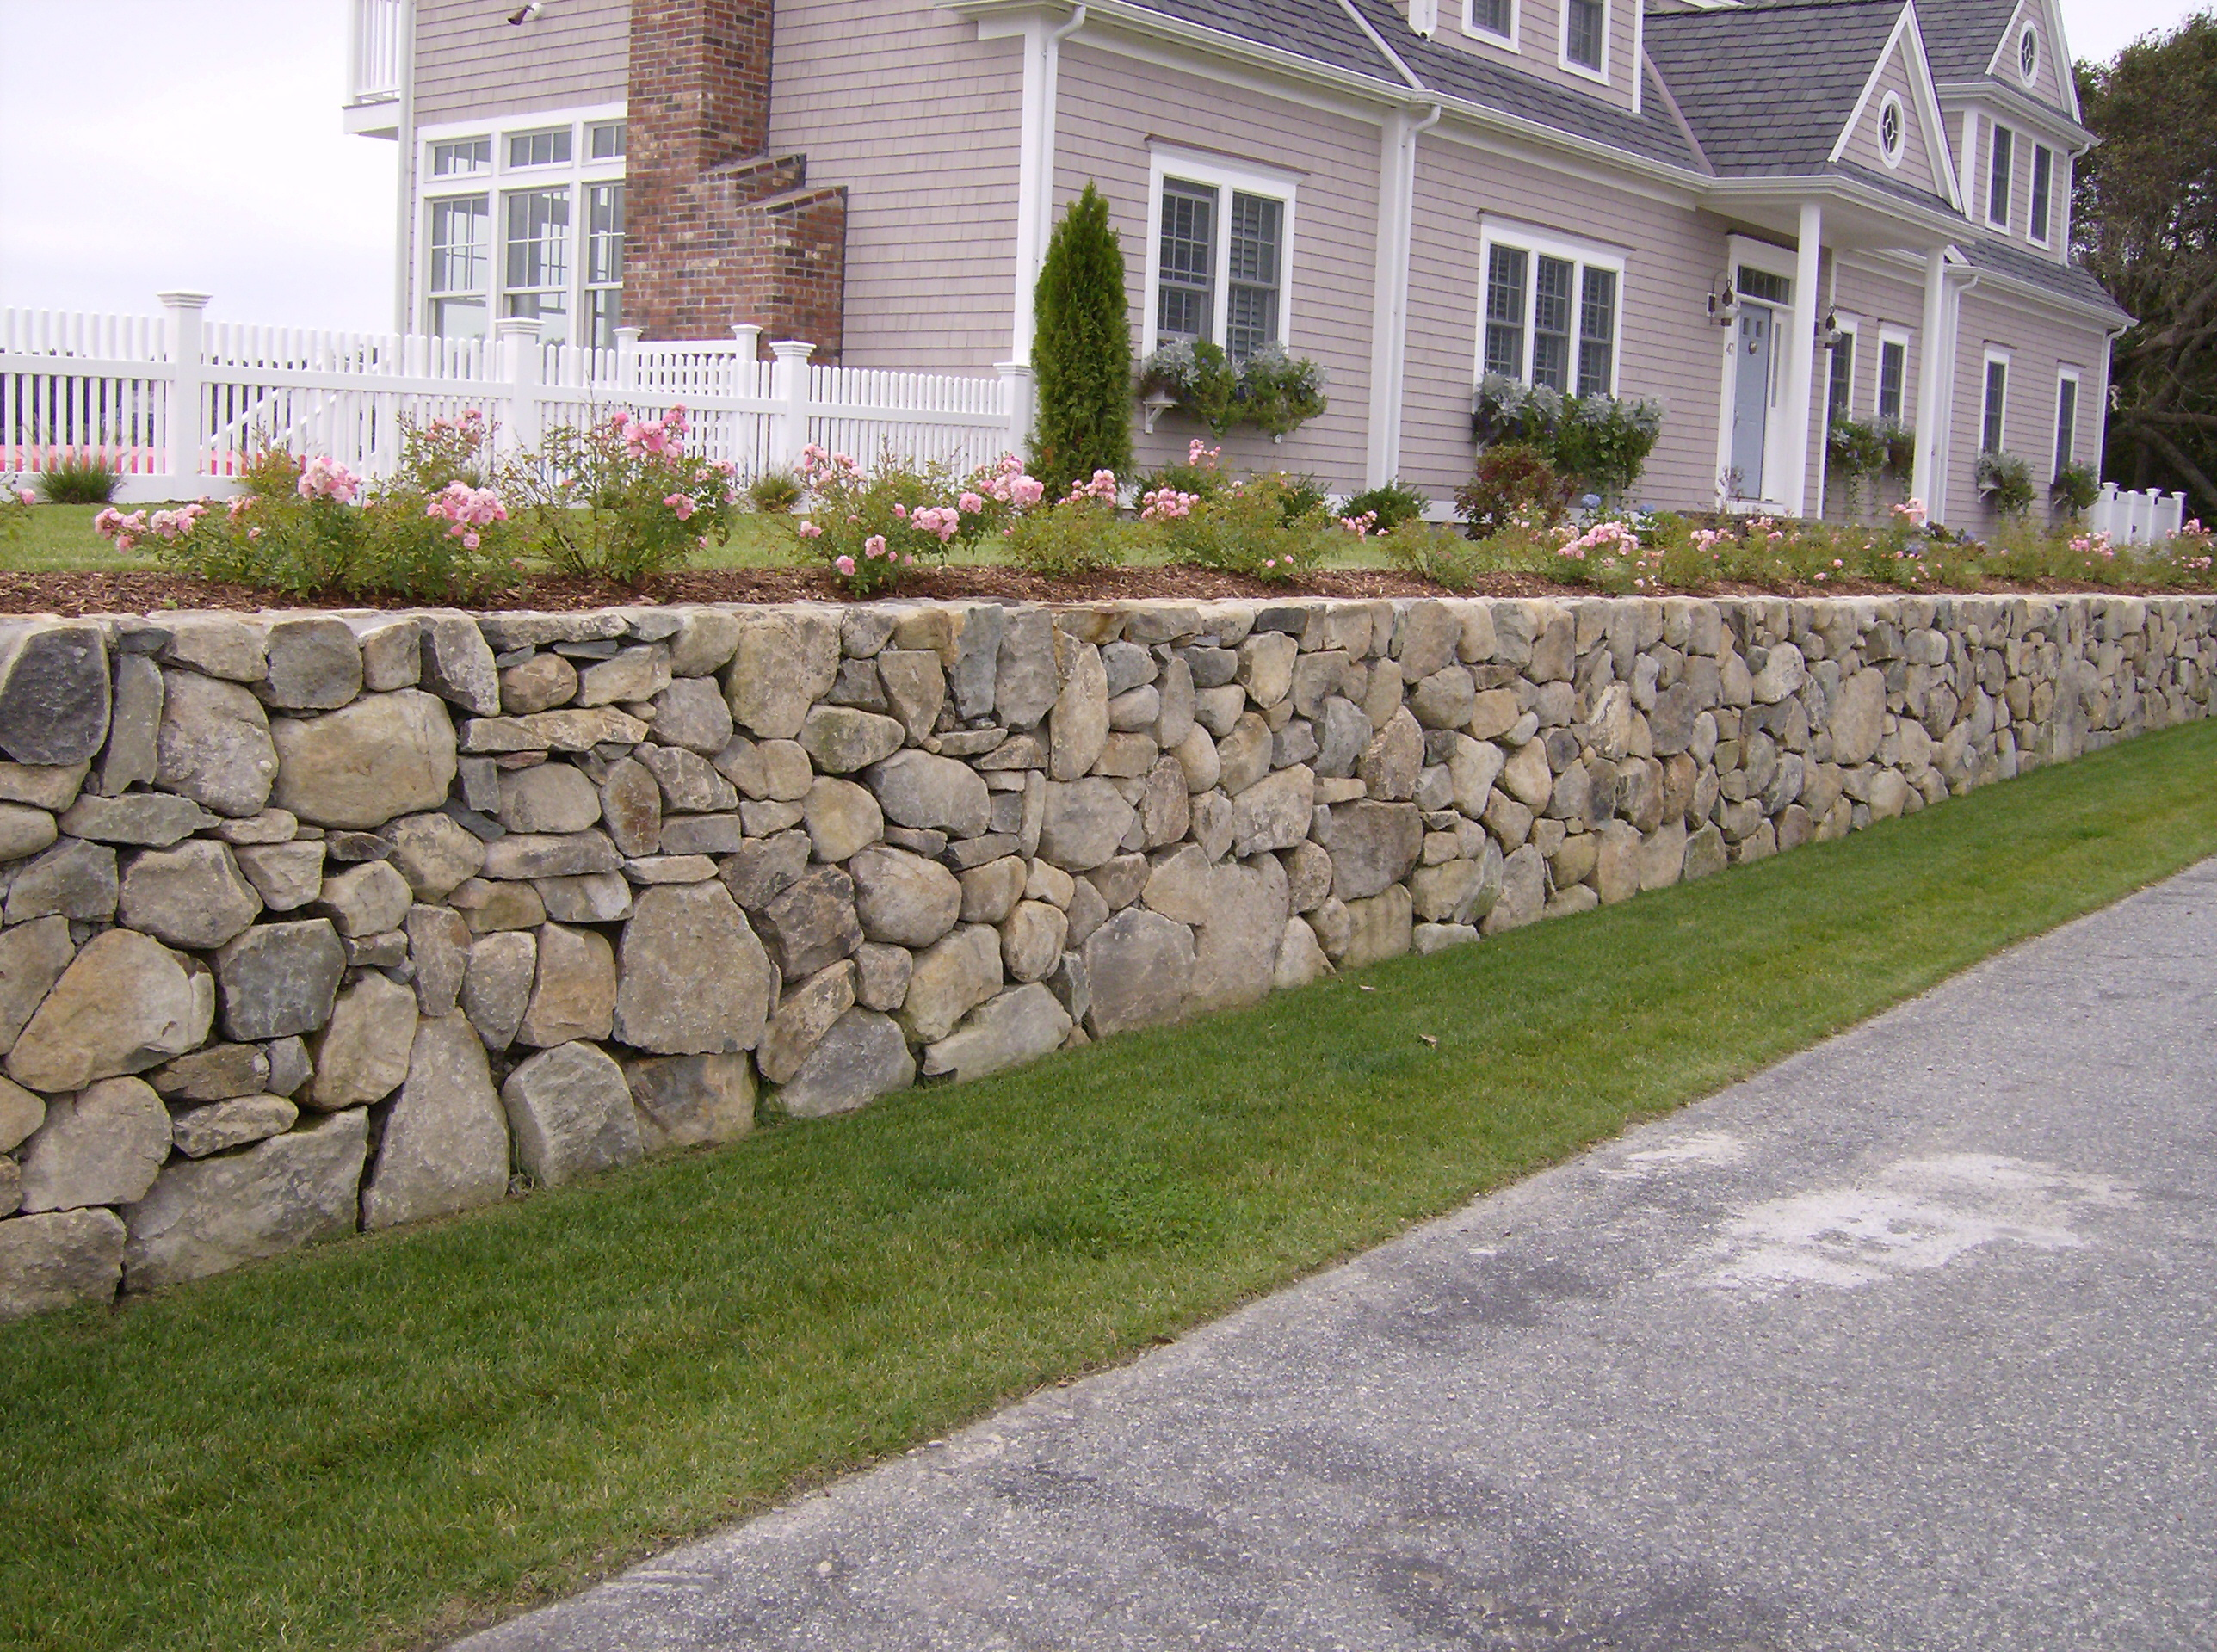 1000 images about retaining wall inspirations on pinterest for Garden wall designs